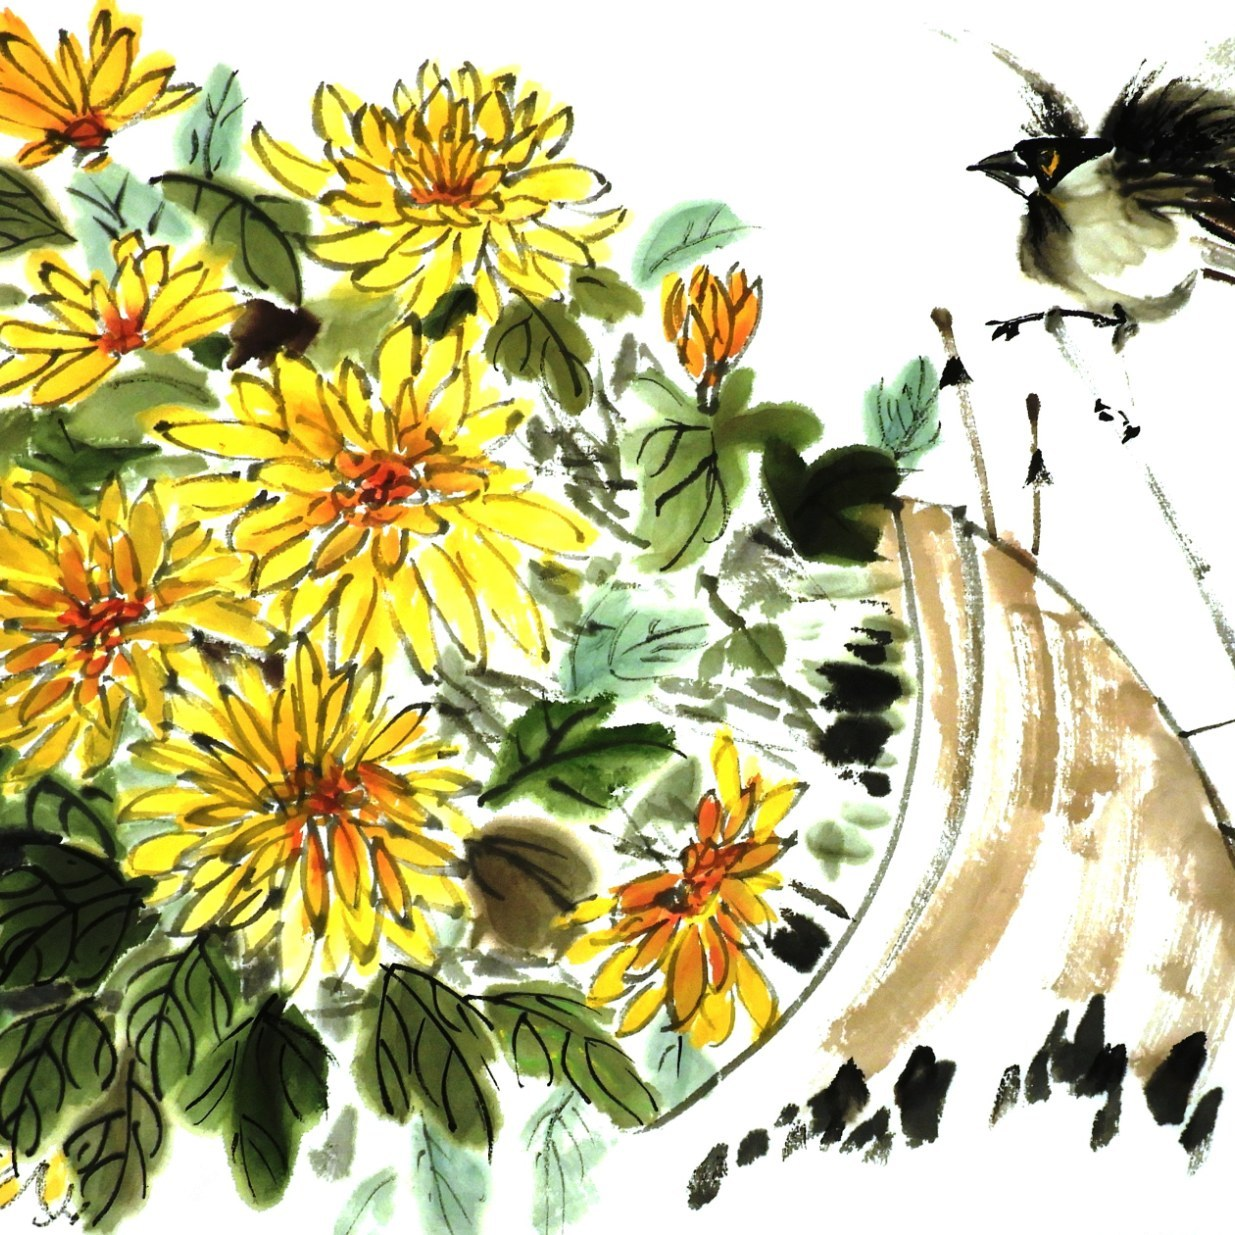 Chrysanthemum and bird by Claire Seaton 2019